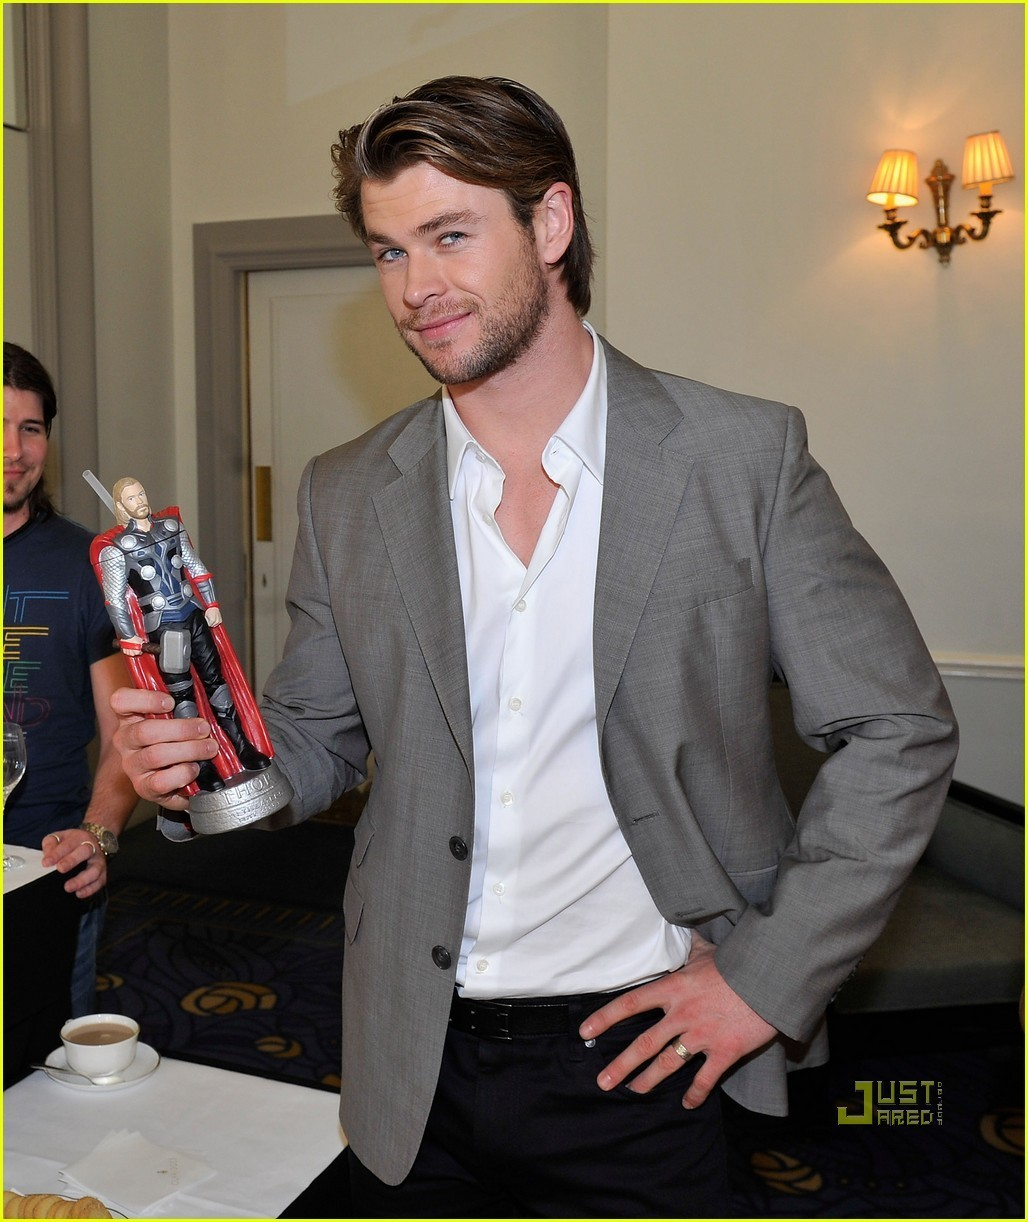 Chris Hemsworth: Thor Slurpee Cup! - chris-hemsworth photo